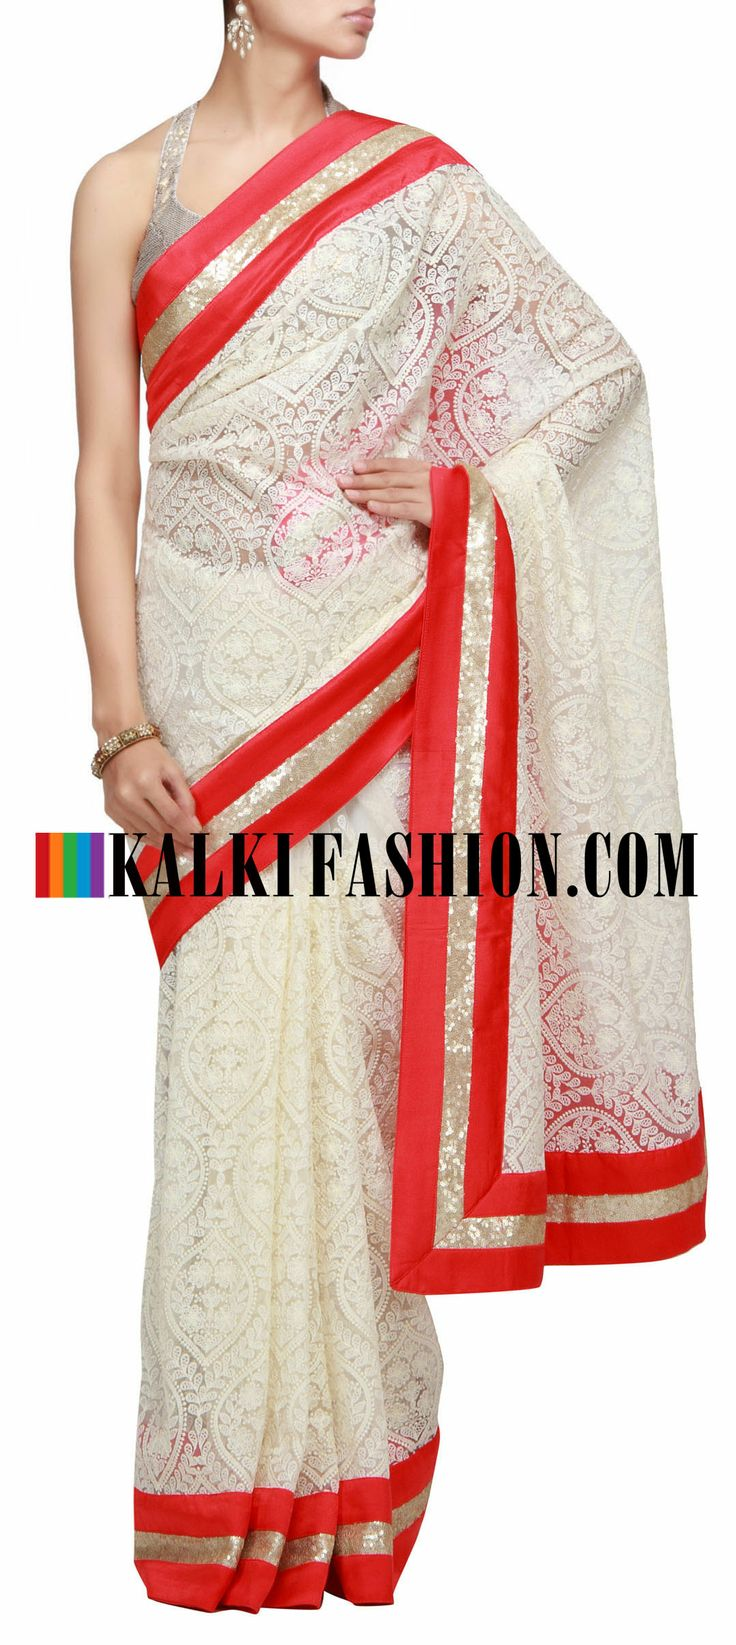 Buy Online from the link below. We ship worldwide (Free Shipping over US$100) http://www.kalkifashion.com/cream-saree-featuring-with-thread-embroidery.html Cream saree featuring with thread embroidery